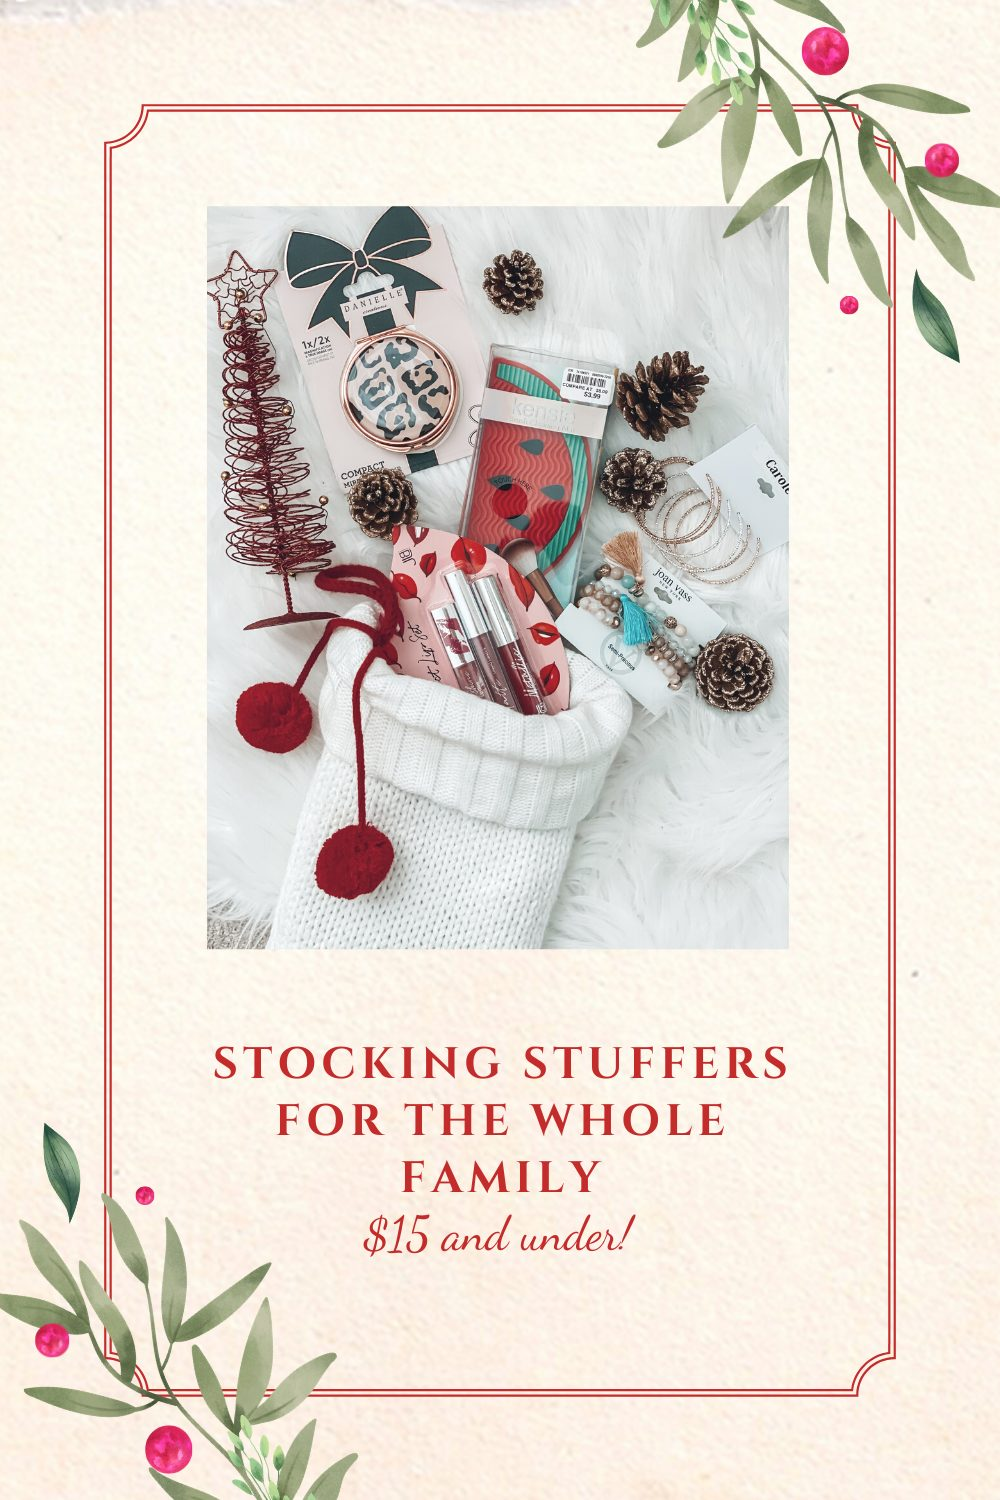 Stocking stuffer ideas for the whole family!